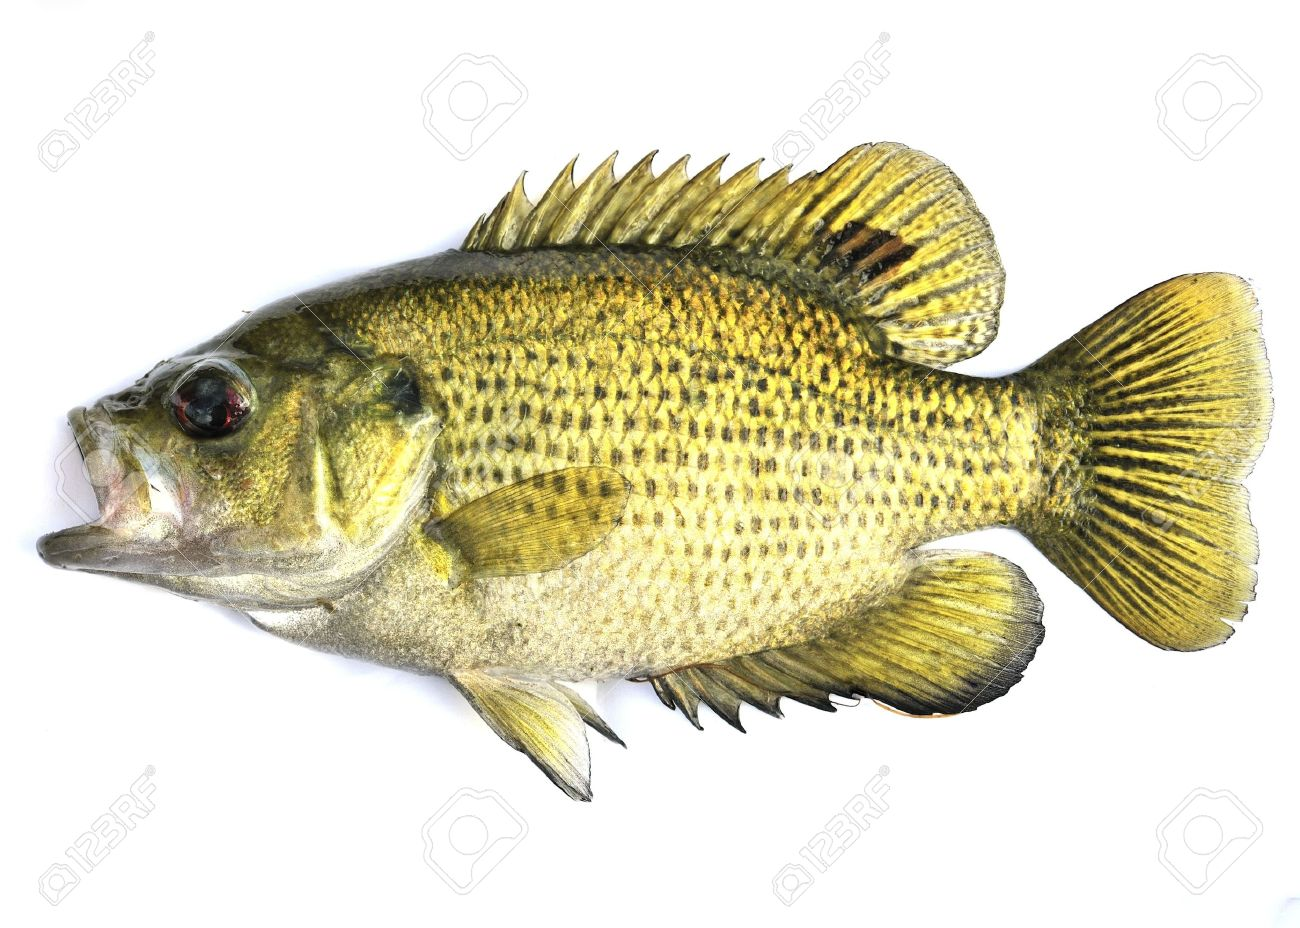 An image of a freshwater rock bass. Stock Photo - 7074276